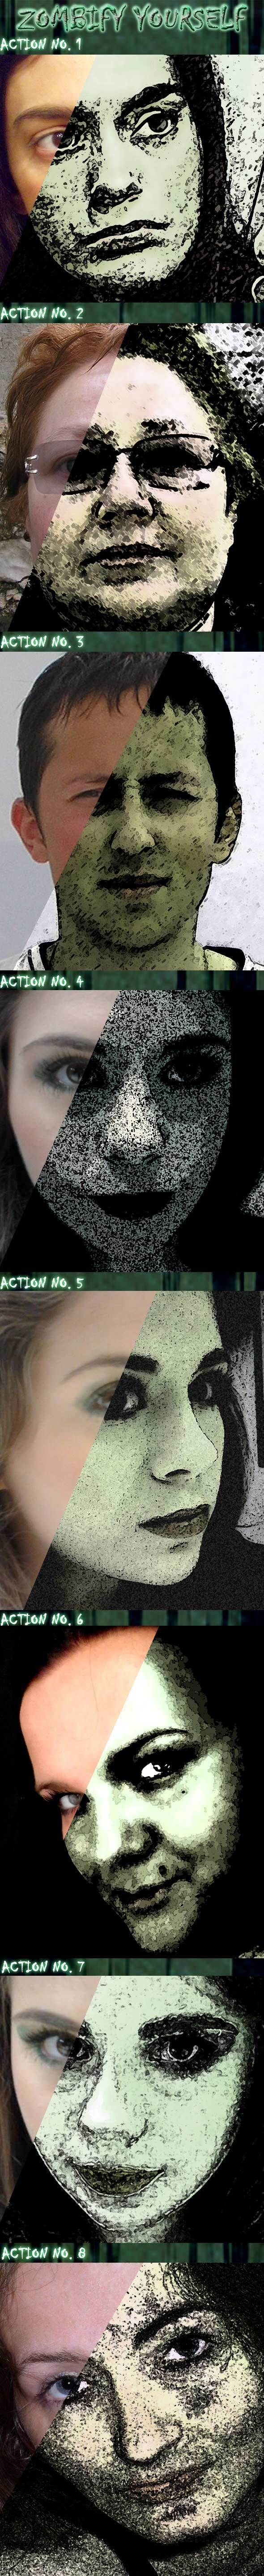 8 'Zombify Yourself' Photoshop Actions